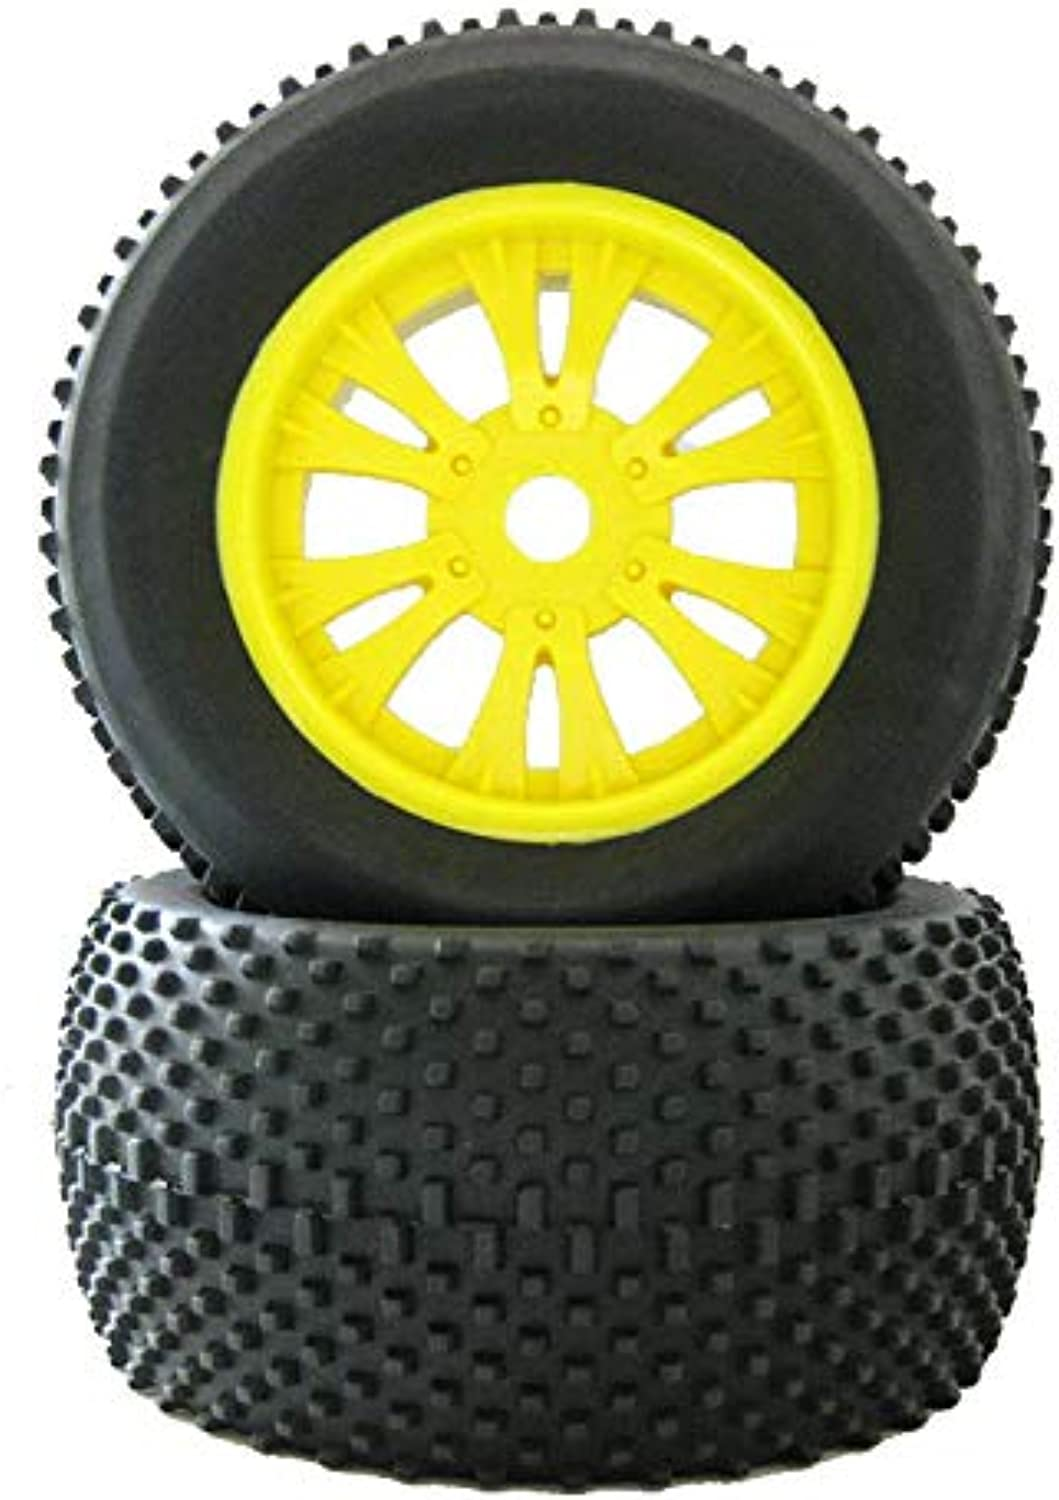 Generic 2Pcs Rubber Sponge Tires Tyre Rim Wheel 140mm68mm Hexagon Adapter 17mm for RC 1 8 HSP HPI Hobby Truck Remote Control Car Yellow